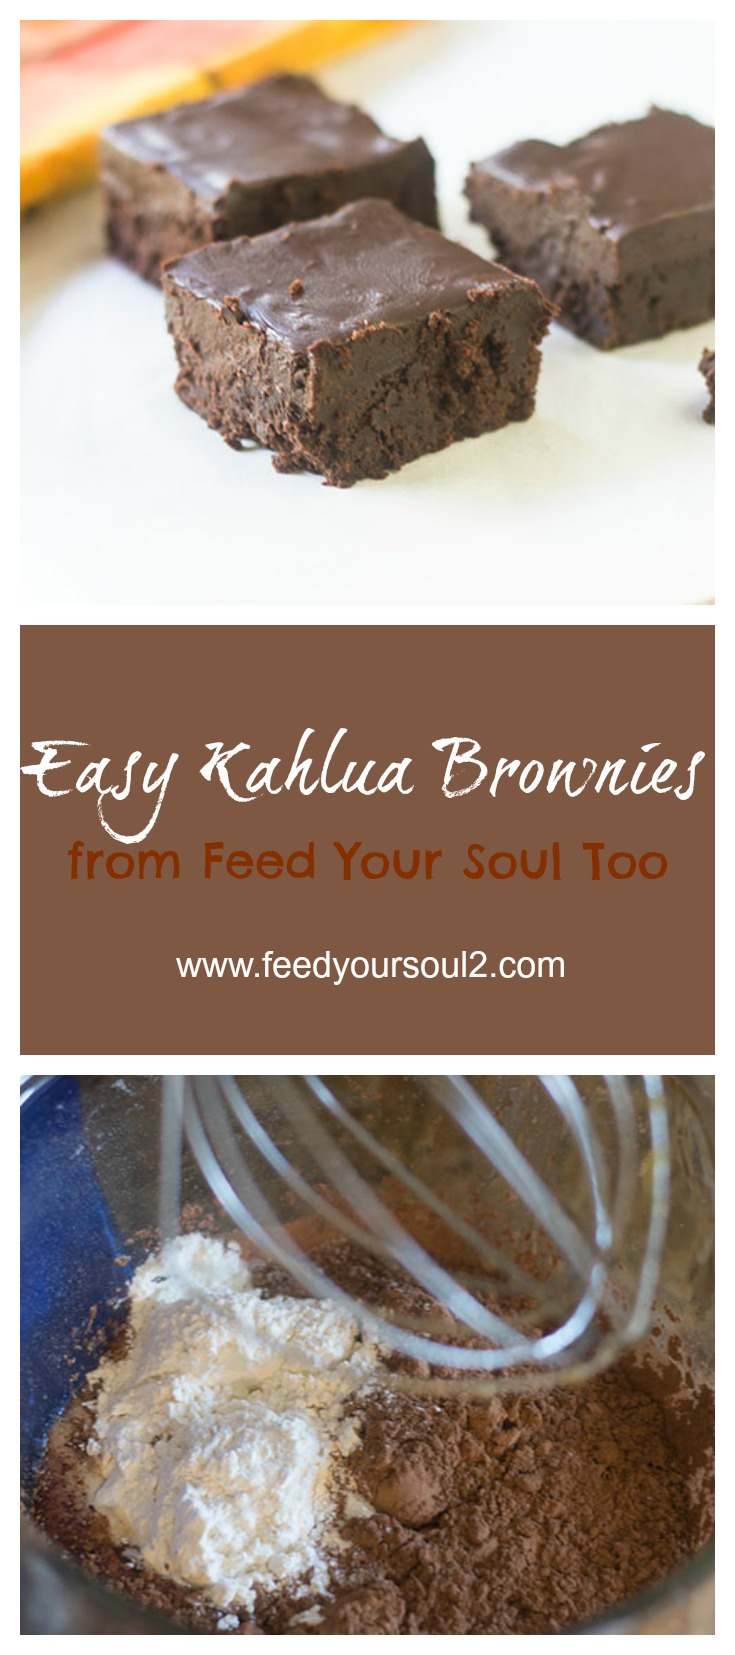 Easy Kahlua Brownies #dessert #Kahlua #chocolate | feedyoursoul2.com